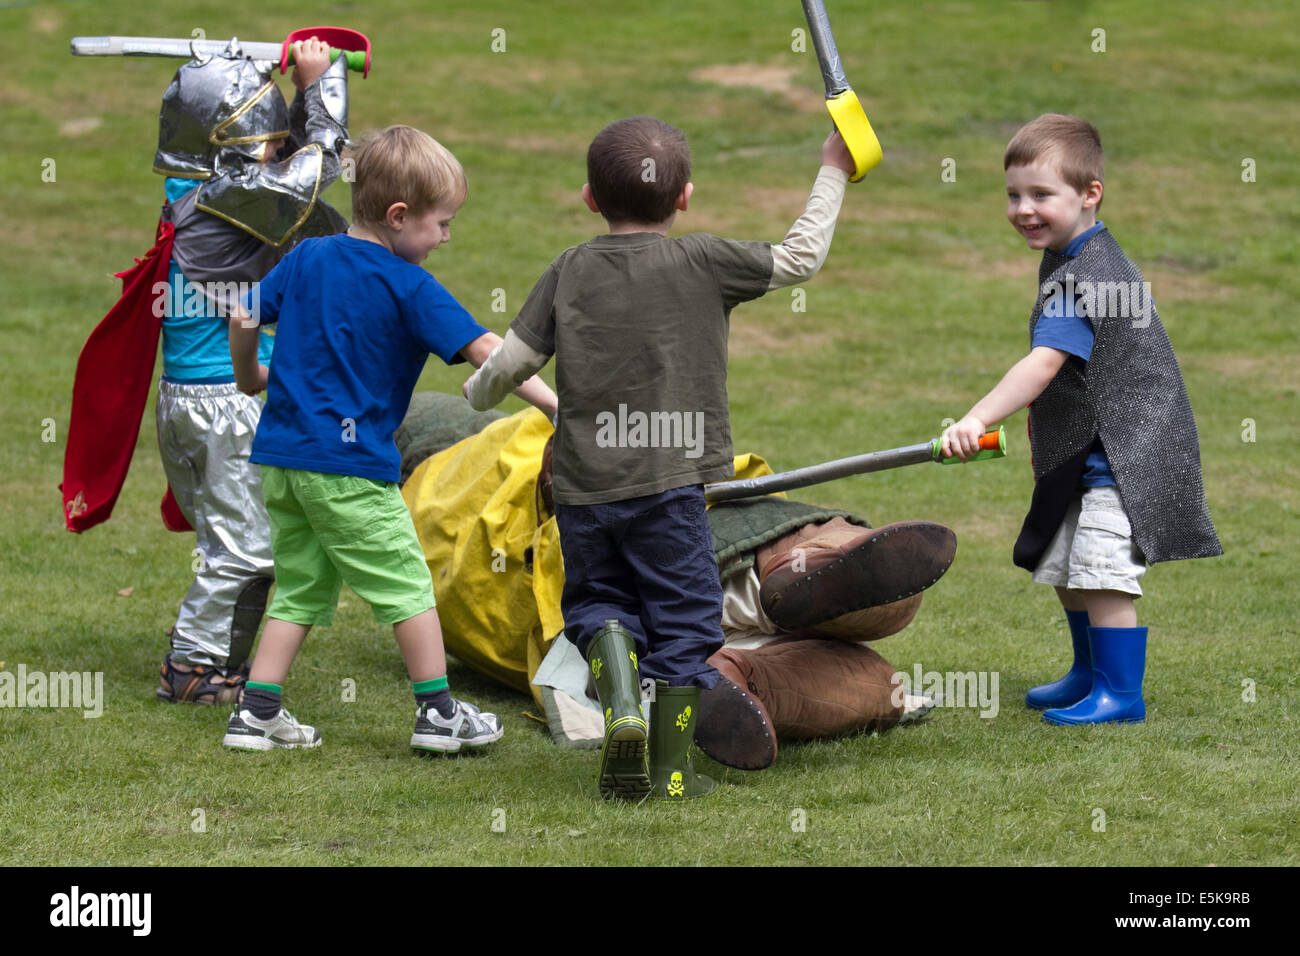 Beeston, Cheshire, UK 3rd August, 2014.  A Medieval Knights Tournament held at Beeston Castle in Cheshire, England. Stock Photo